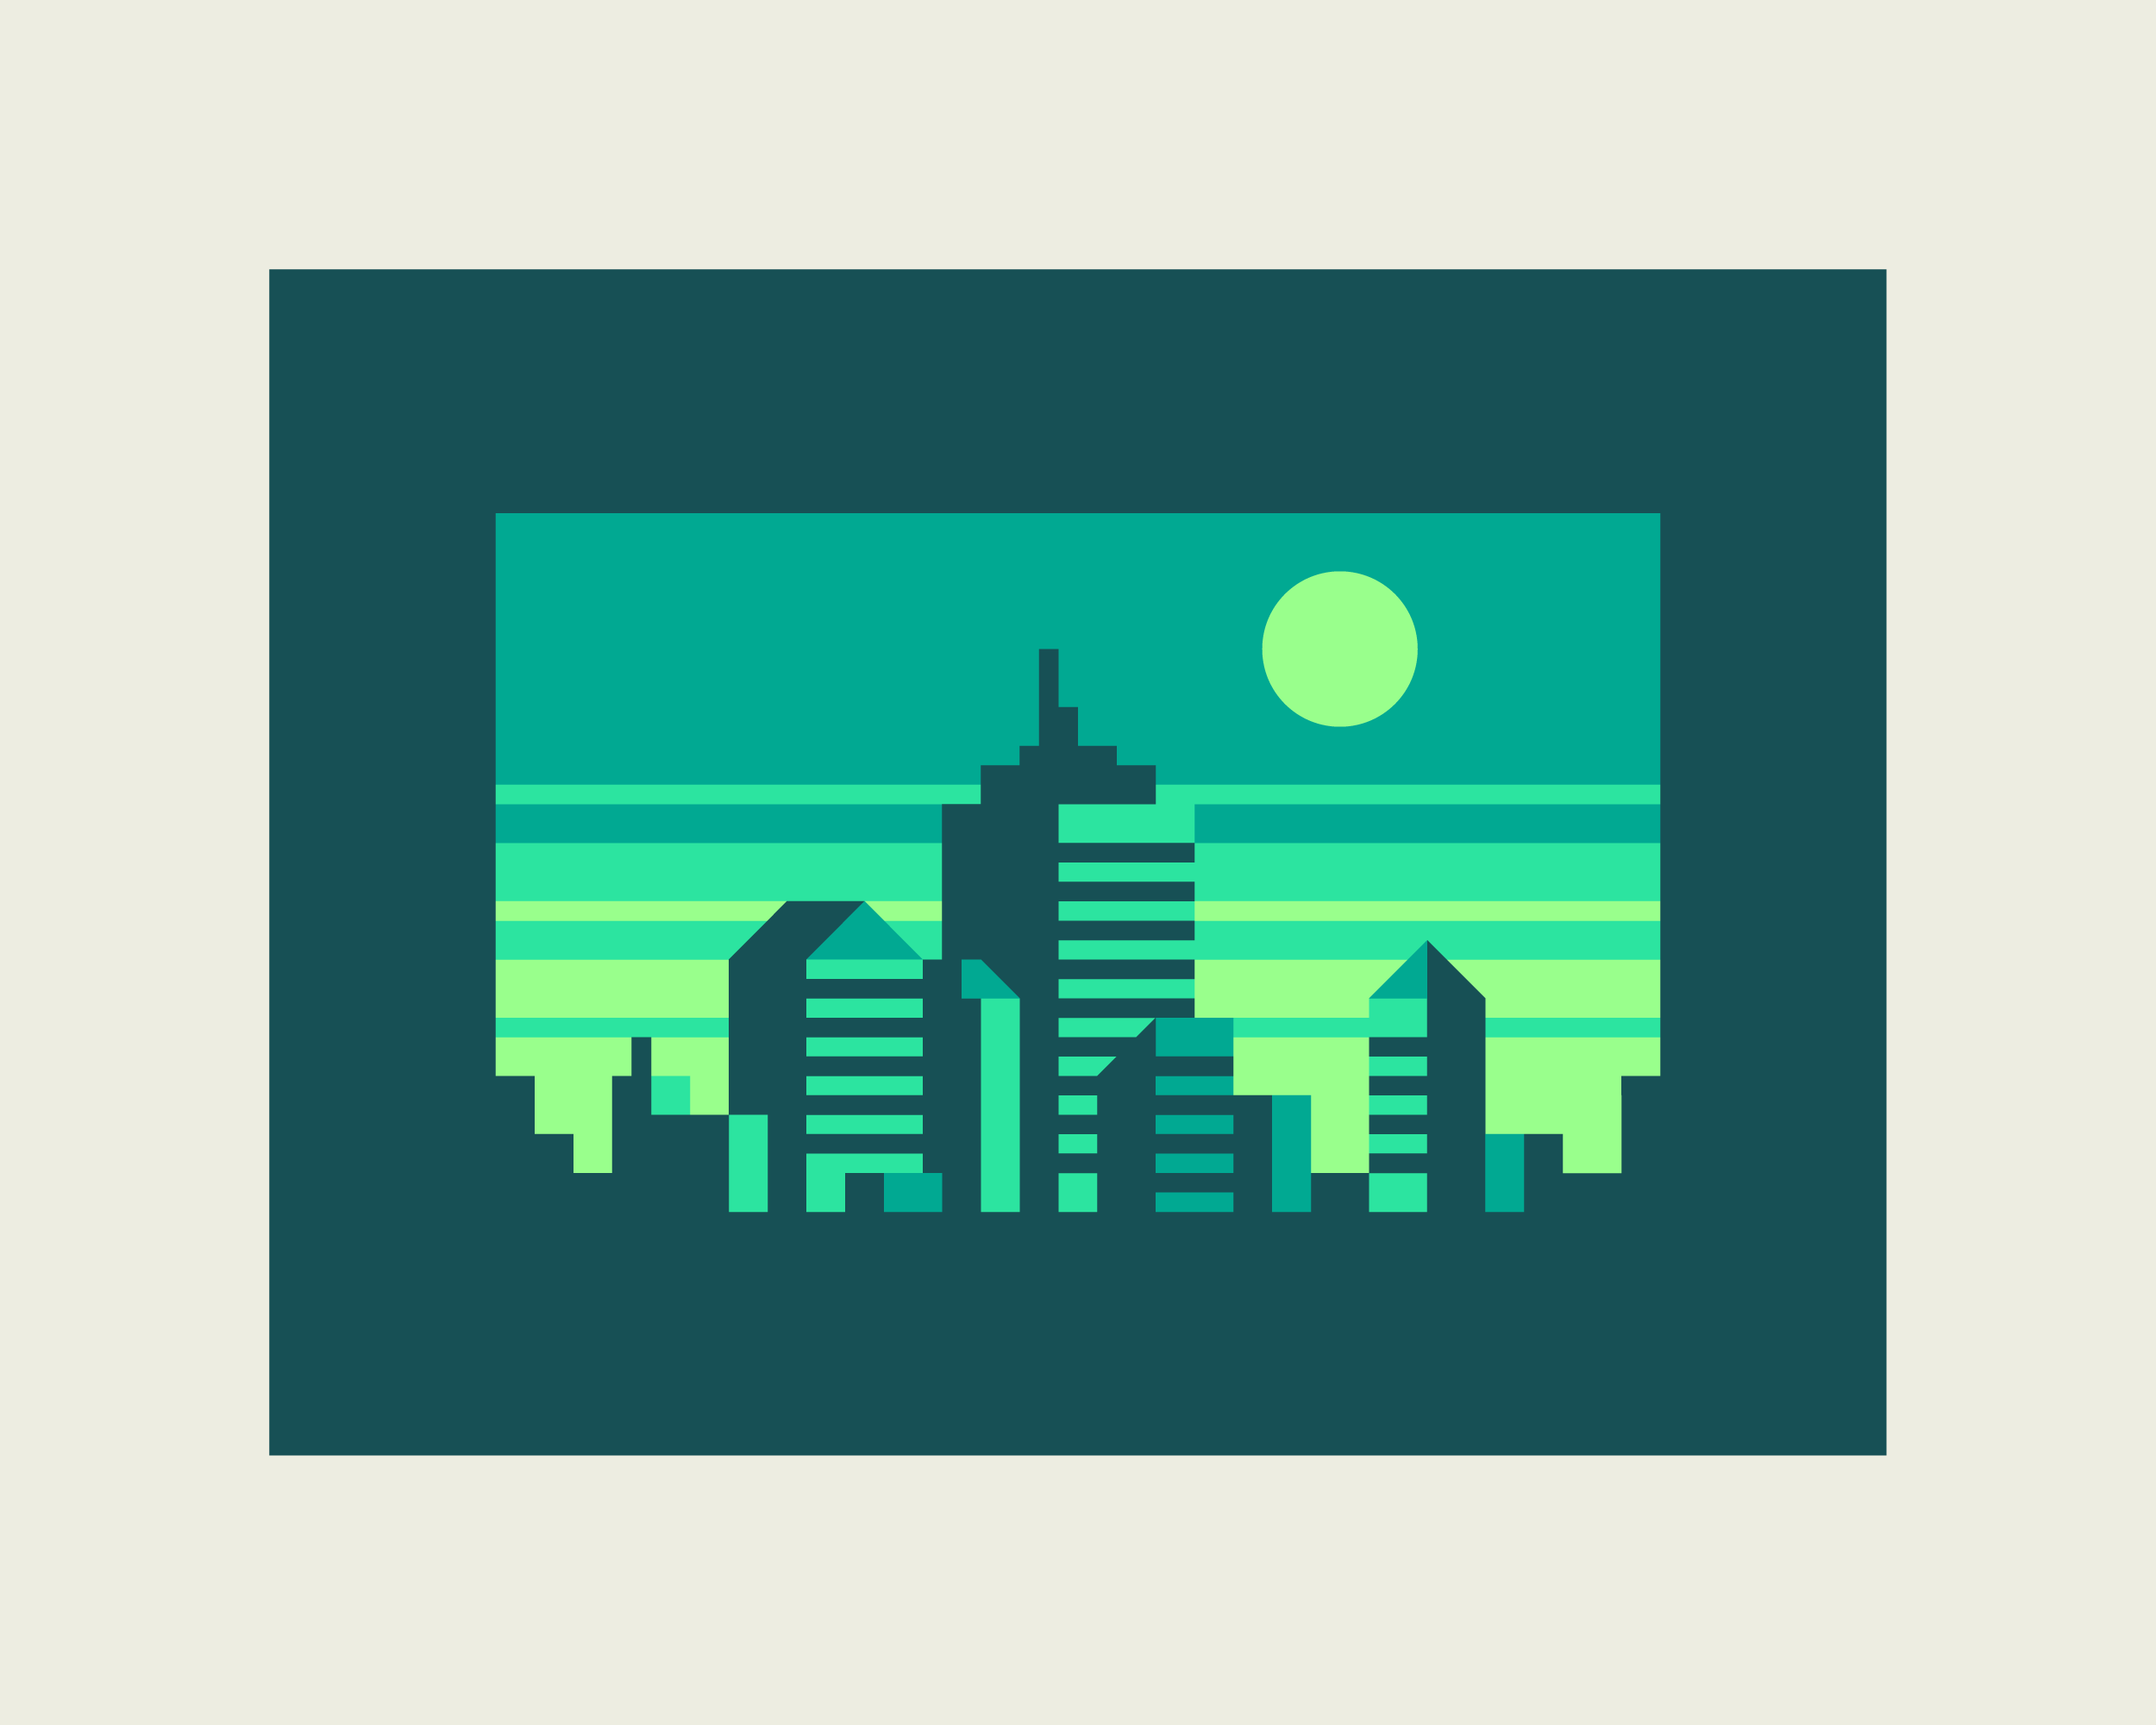 Abstract Cities: Emerald design by Matt Anderson and Canopy Design. Limited color, geometric city skyline.